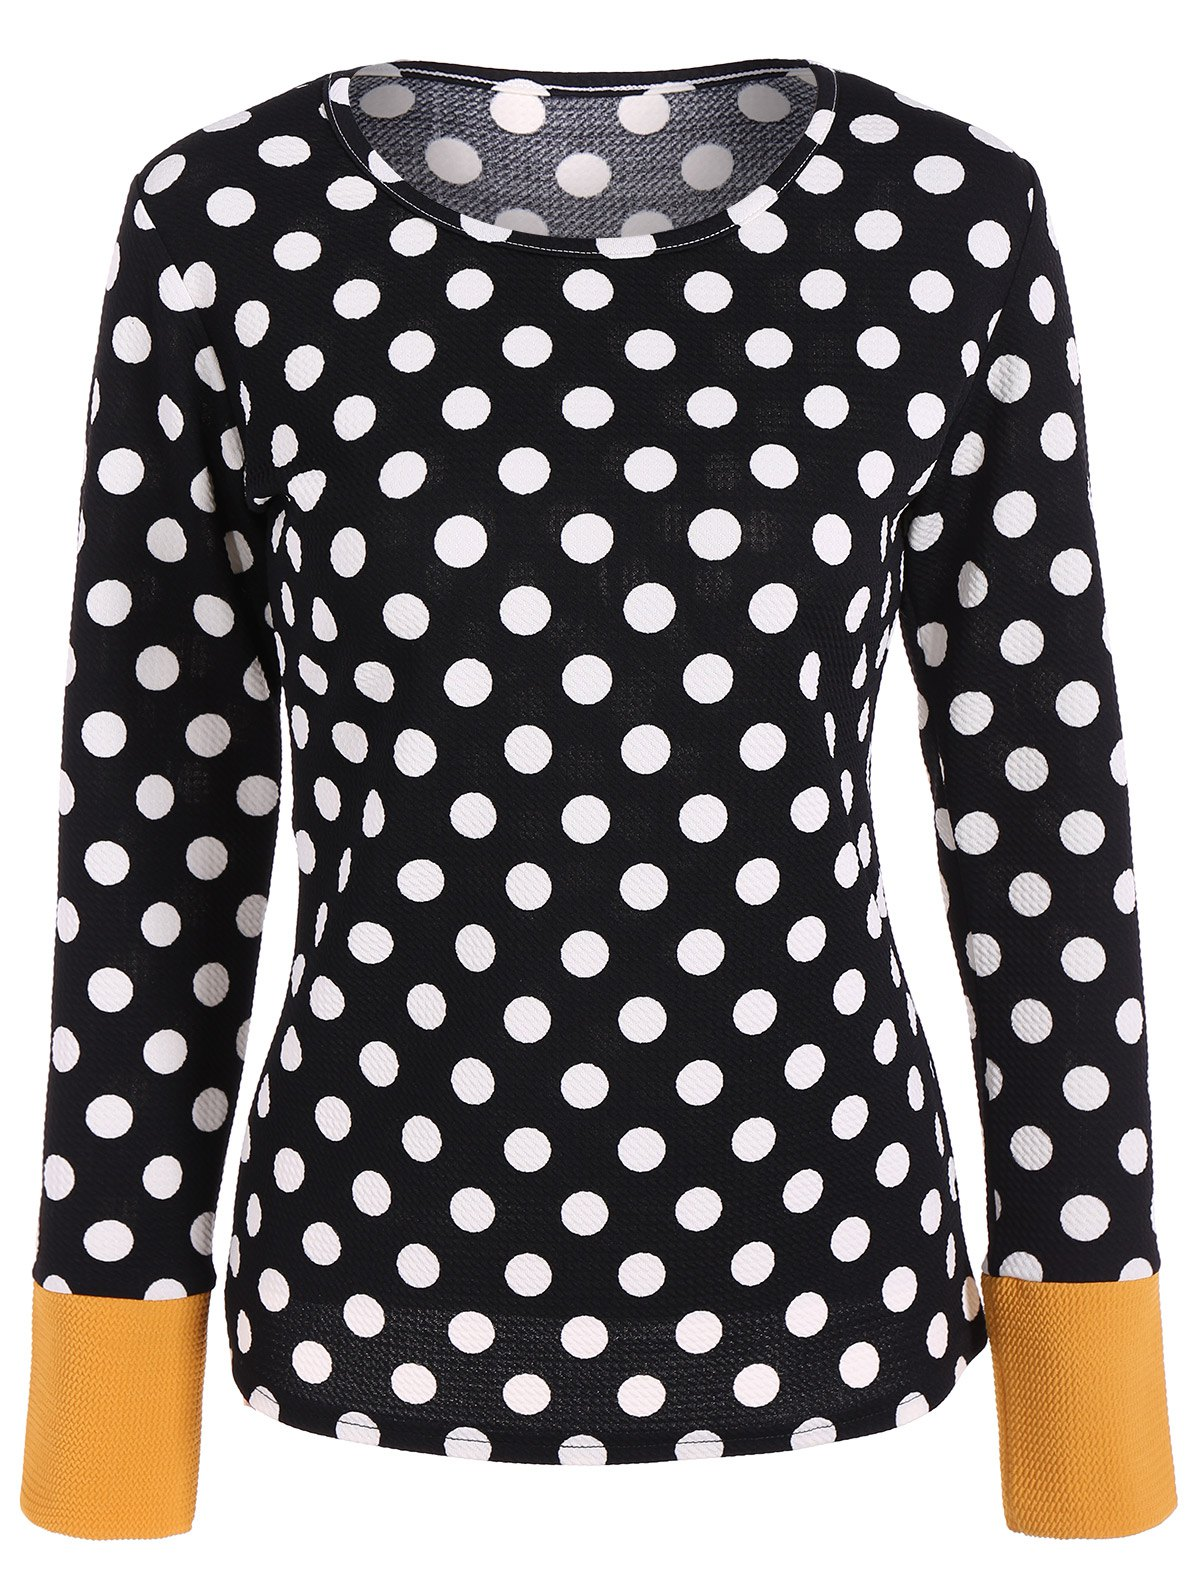 Trendy Scoop Neck Polka Dot Patchwork Sleeve T-Shirt